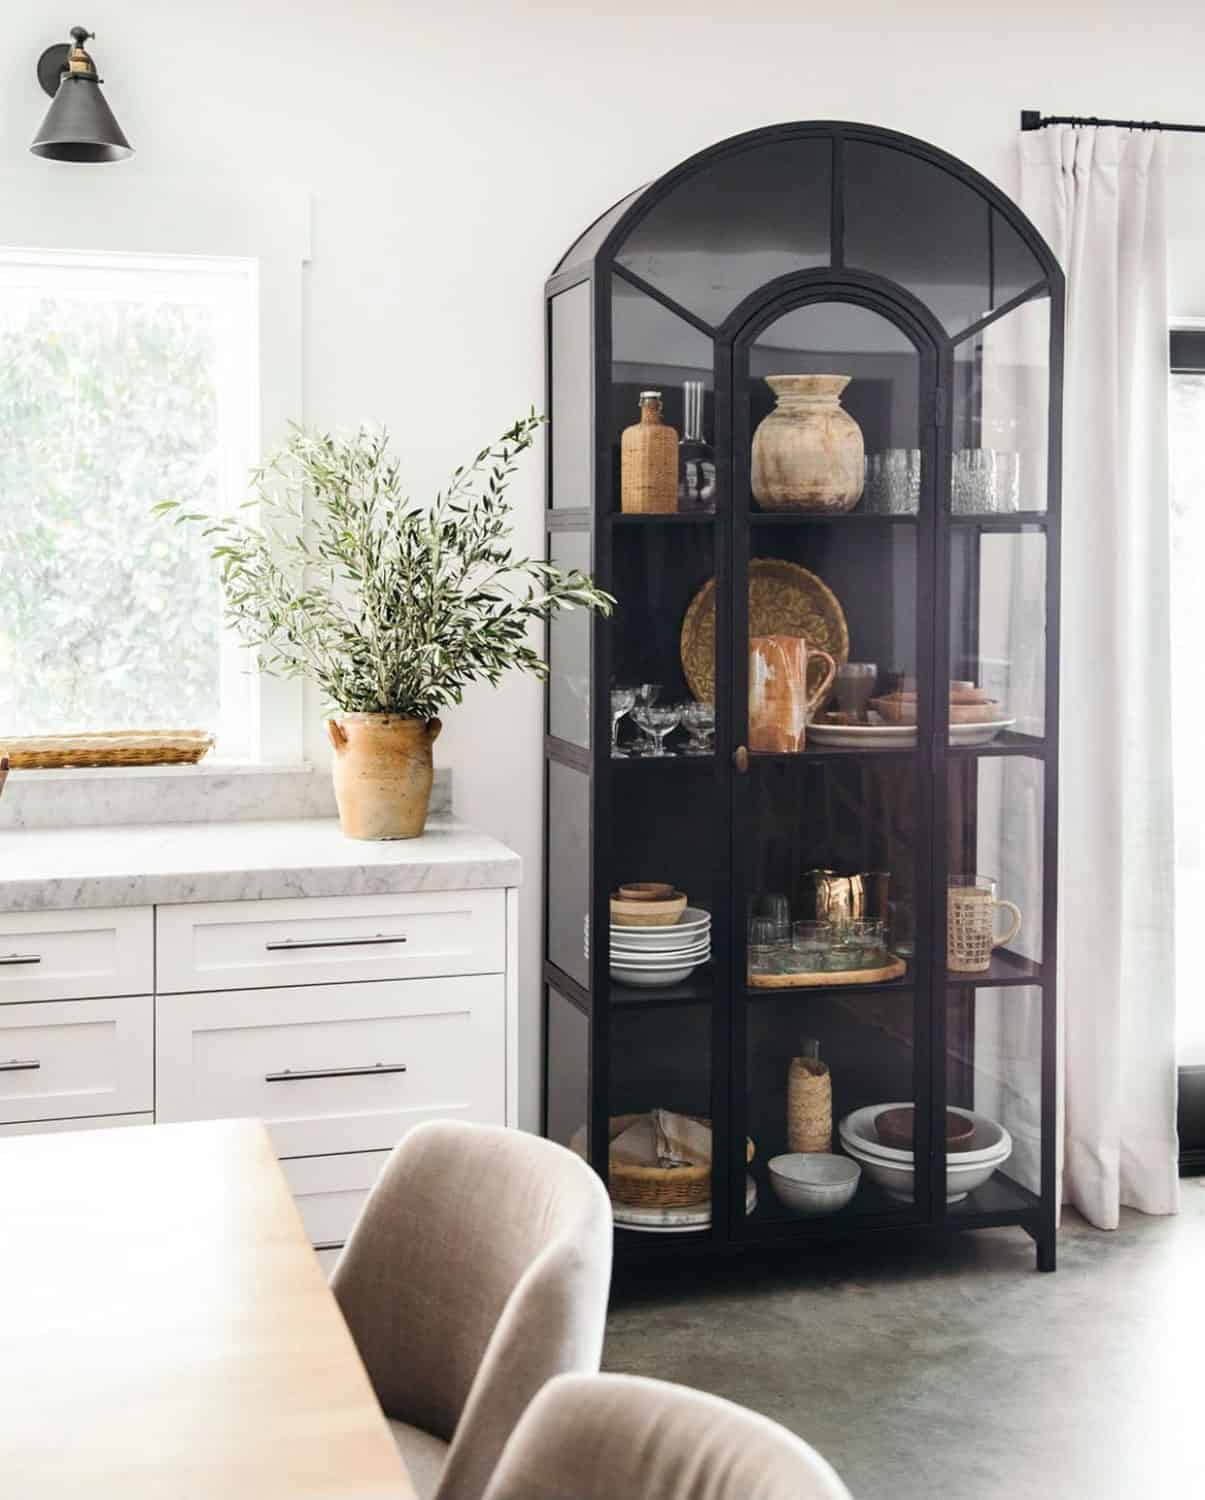 Glass cabinet with vintage dishes